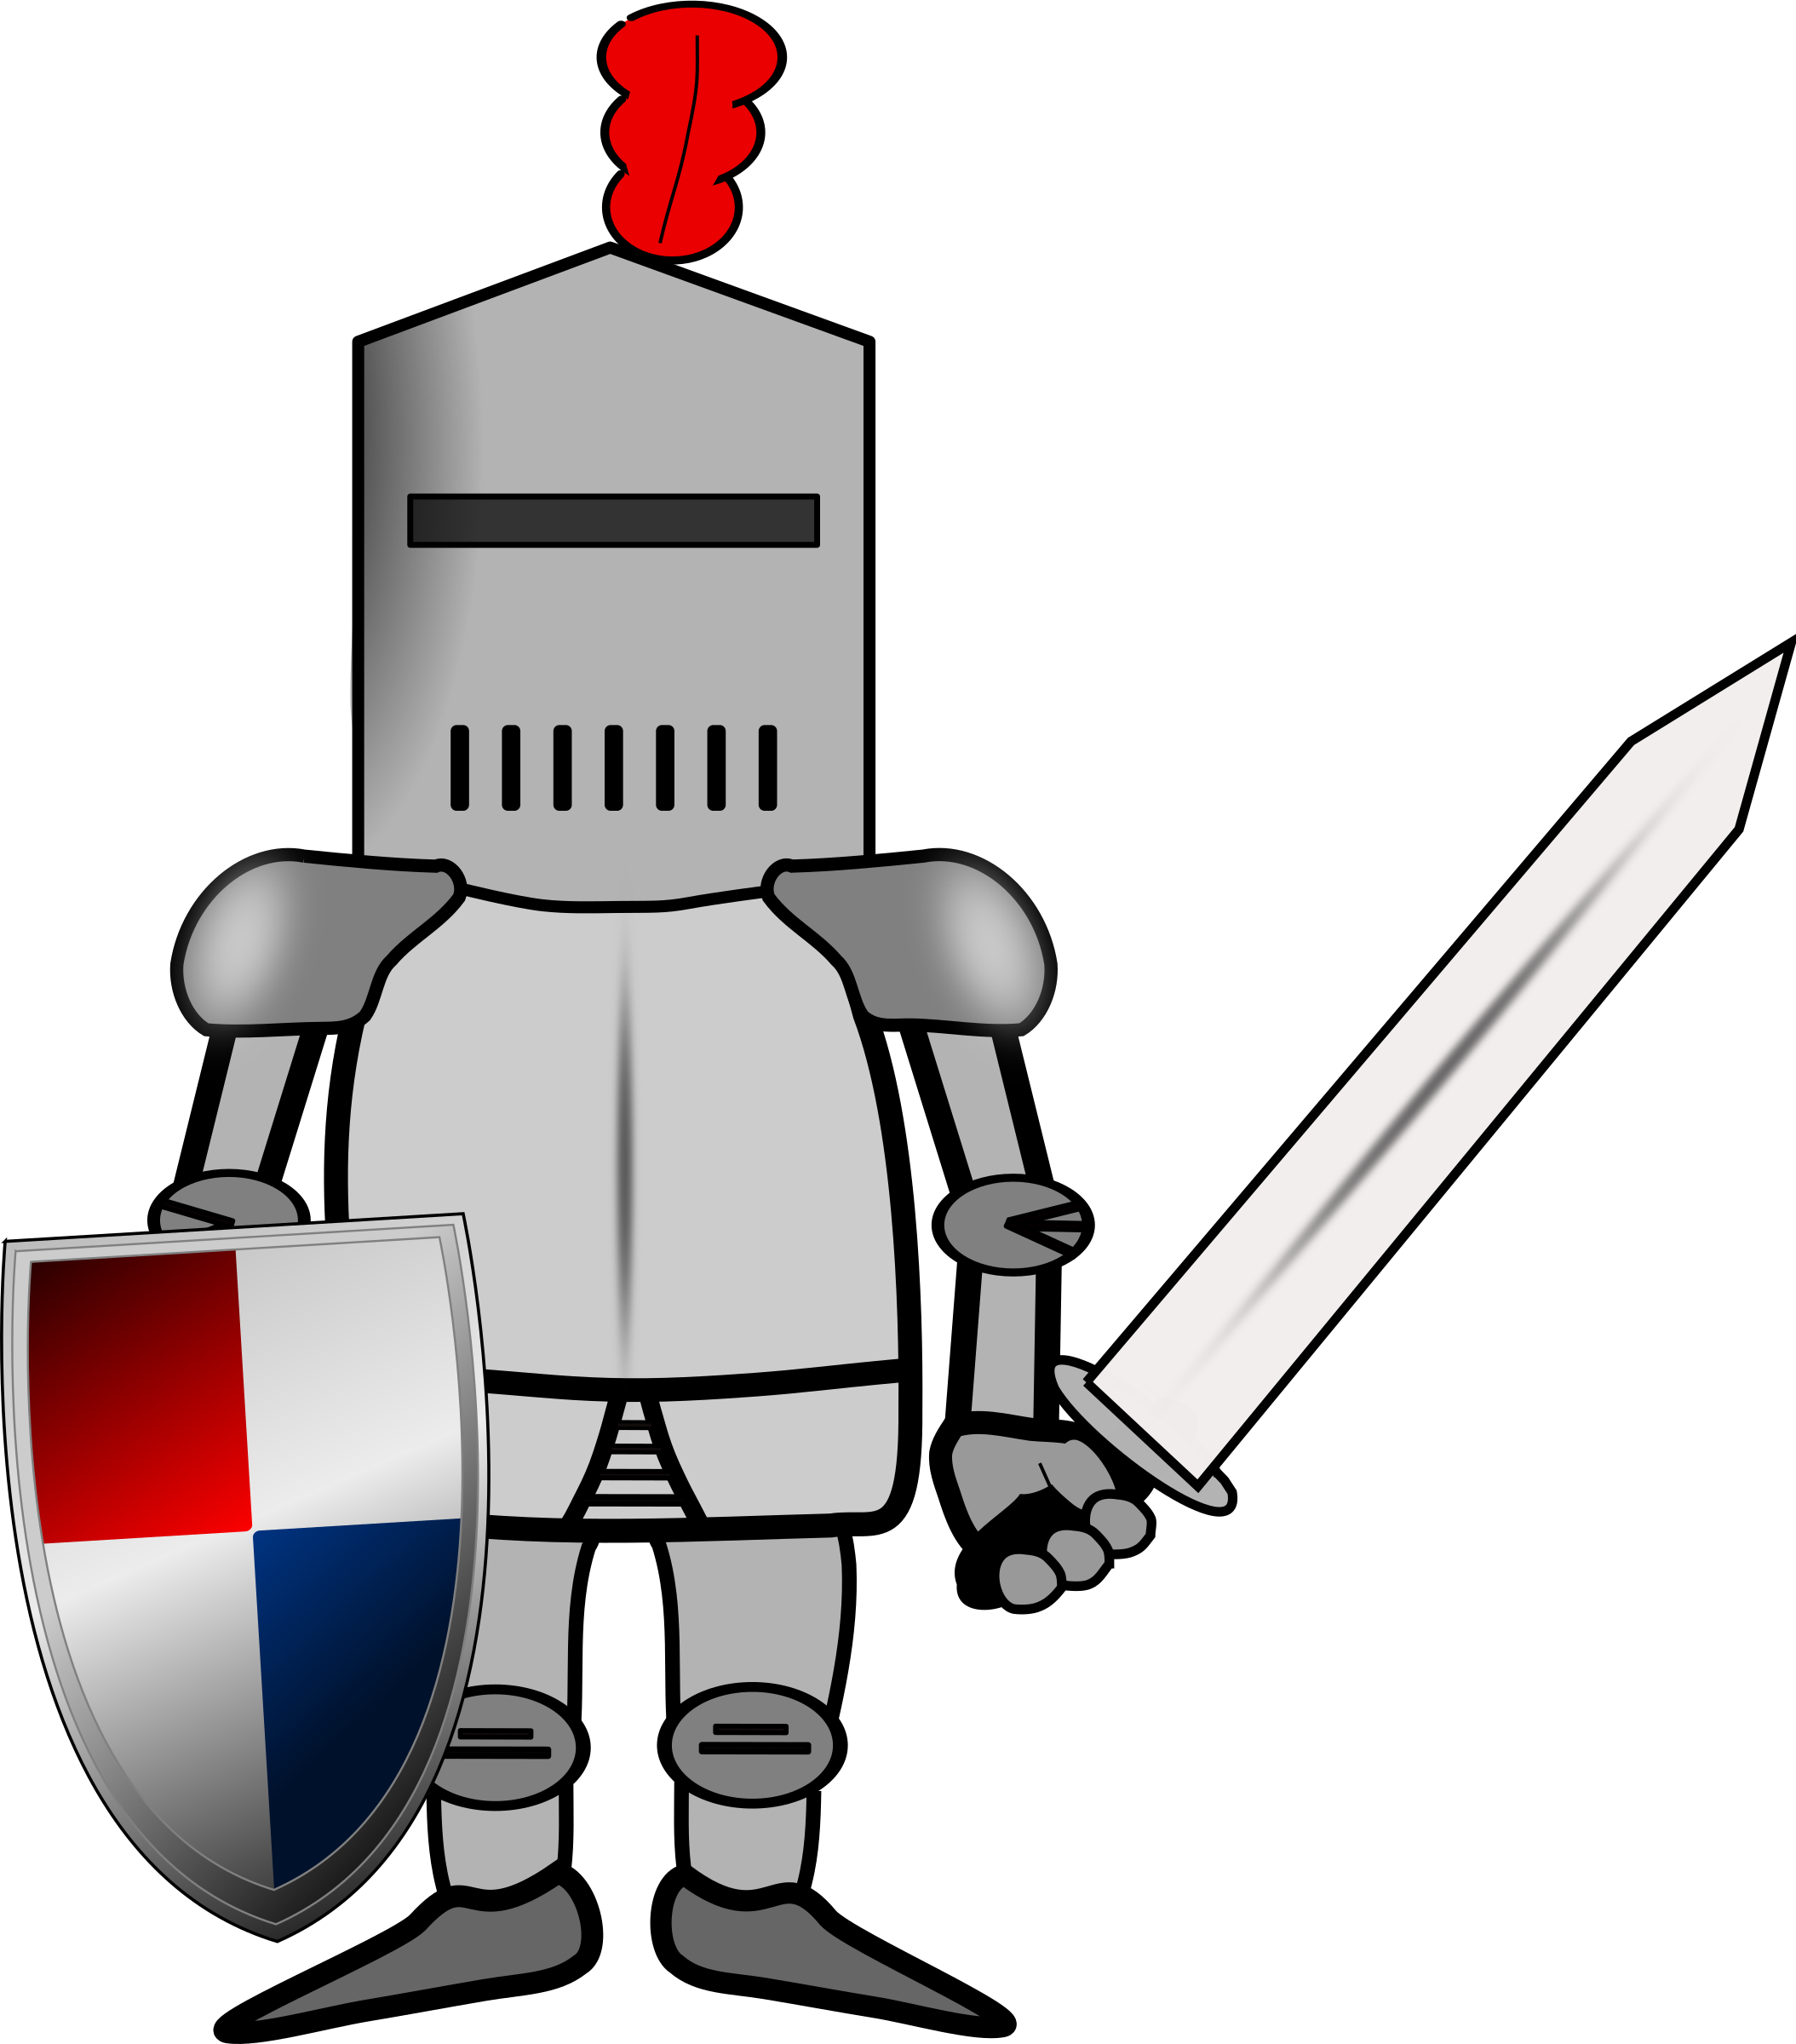 vector royalty free Knight clipart. Frames illustrations hd images.